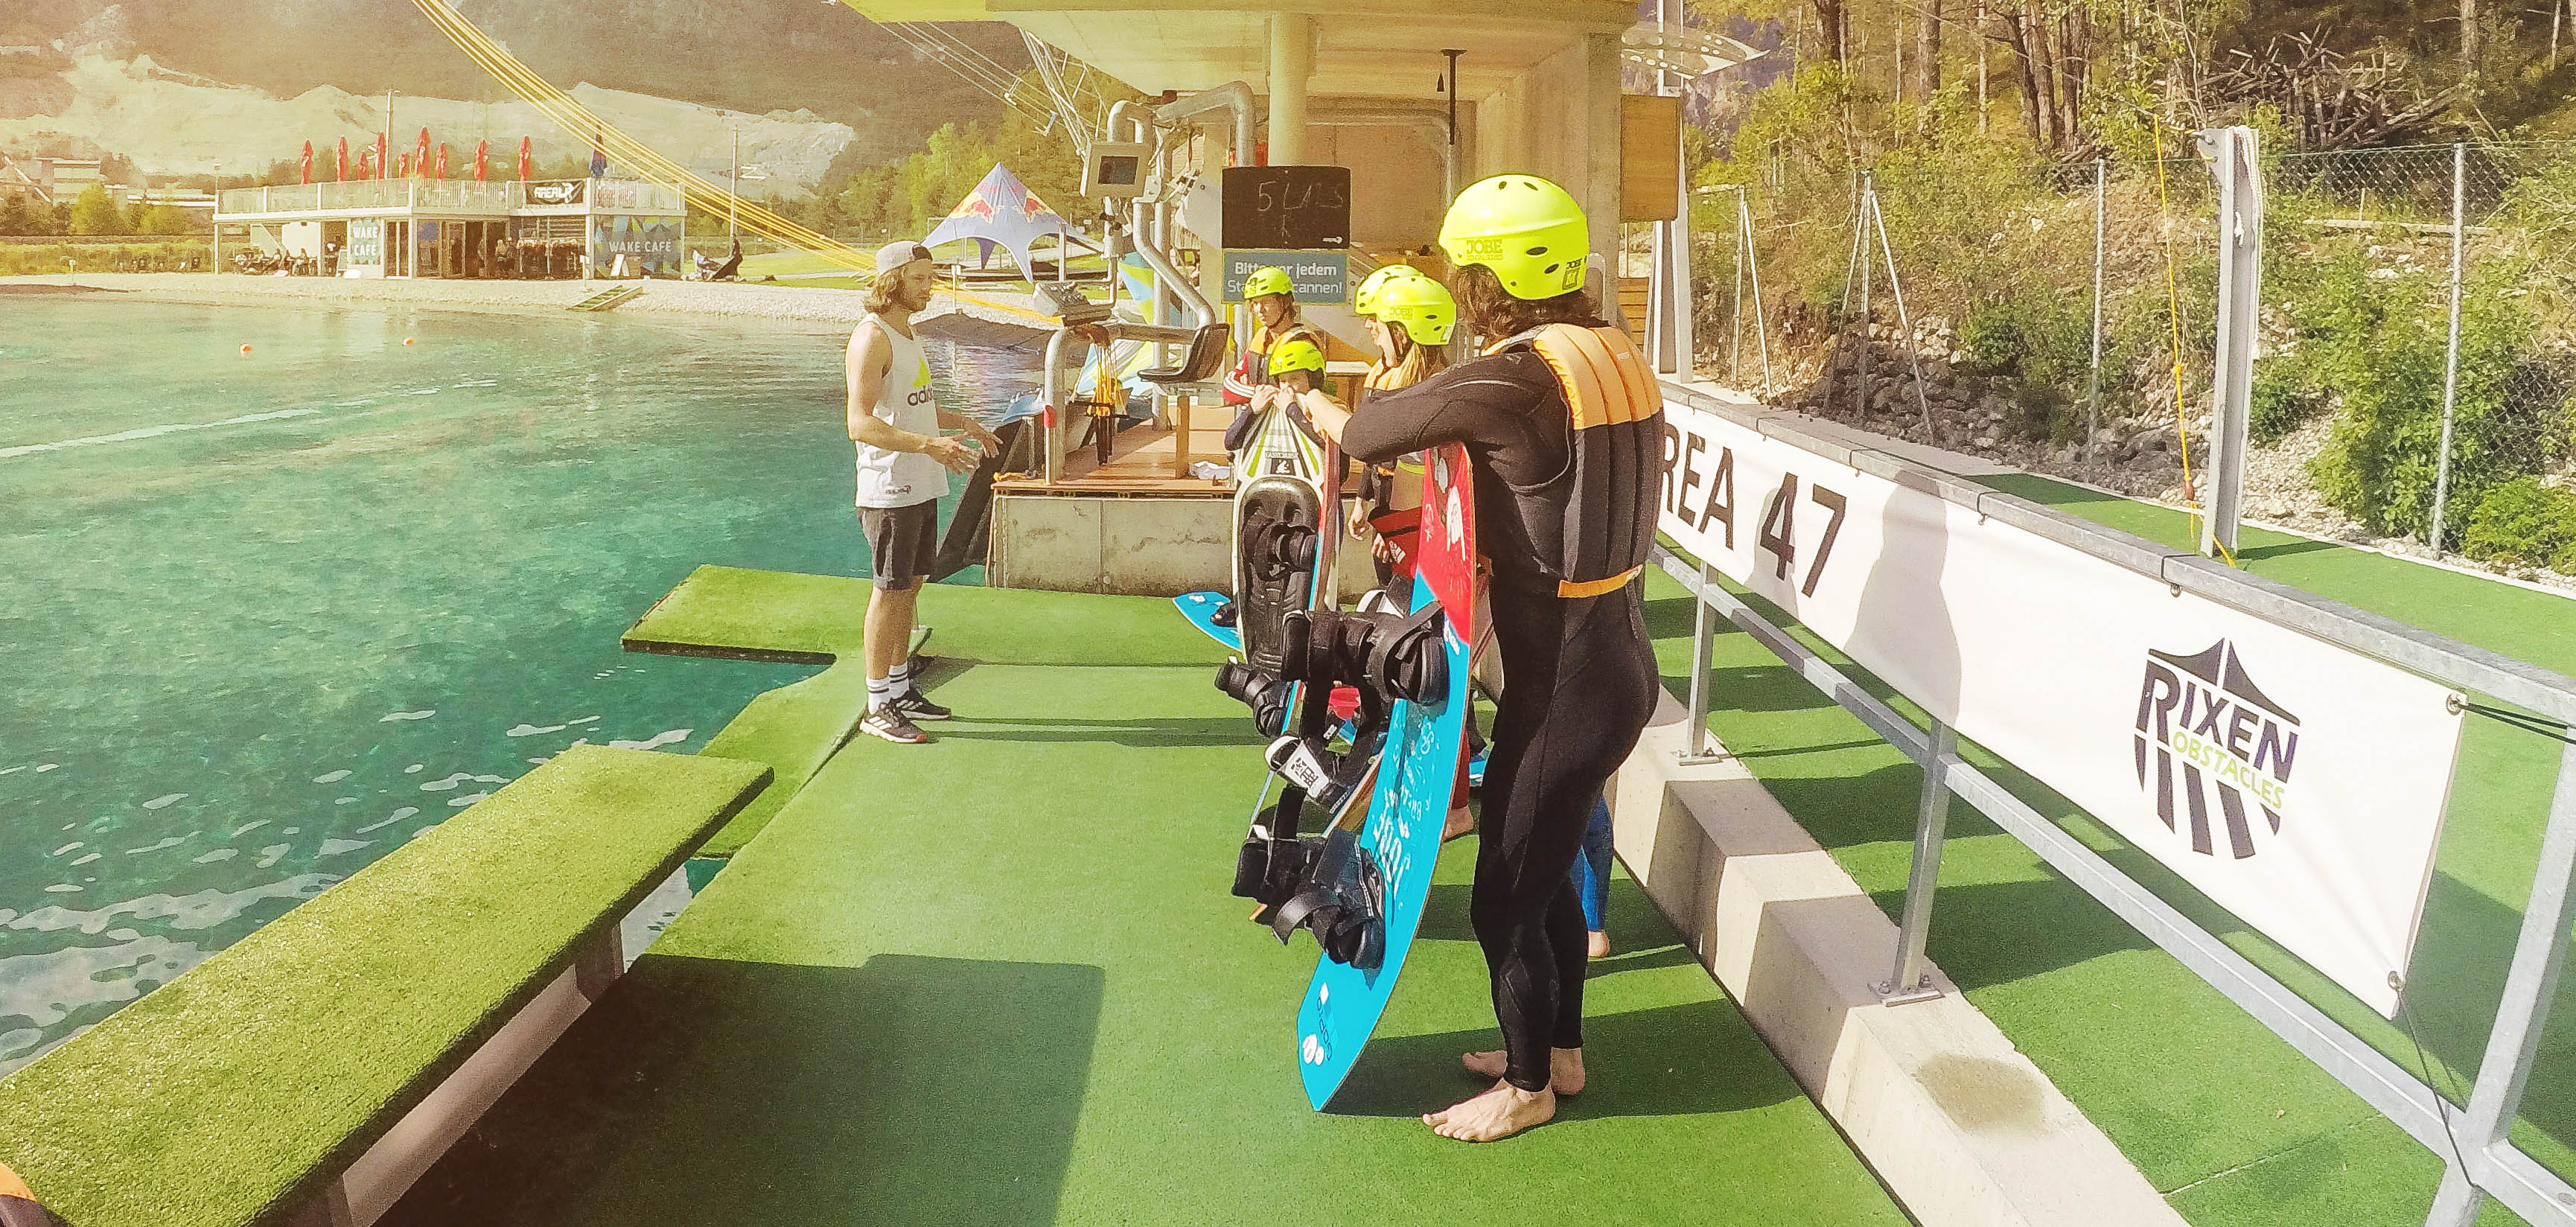 Learn wakeboarding with the AREA 47